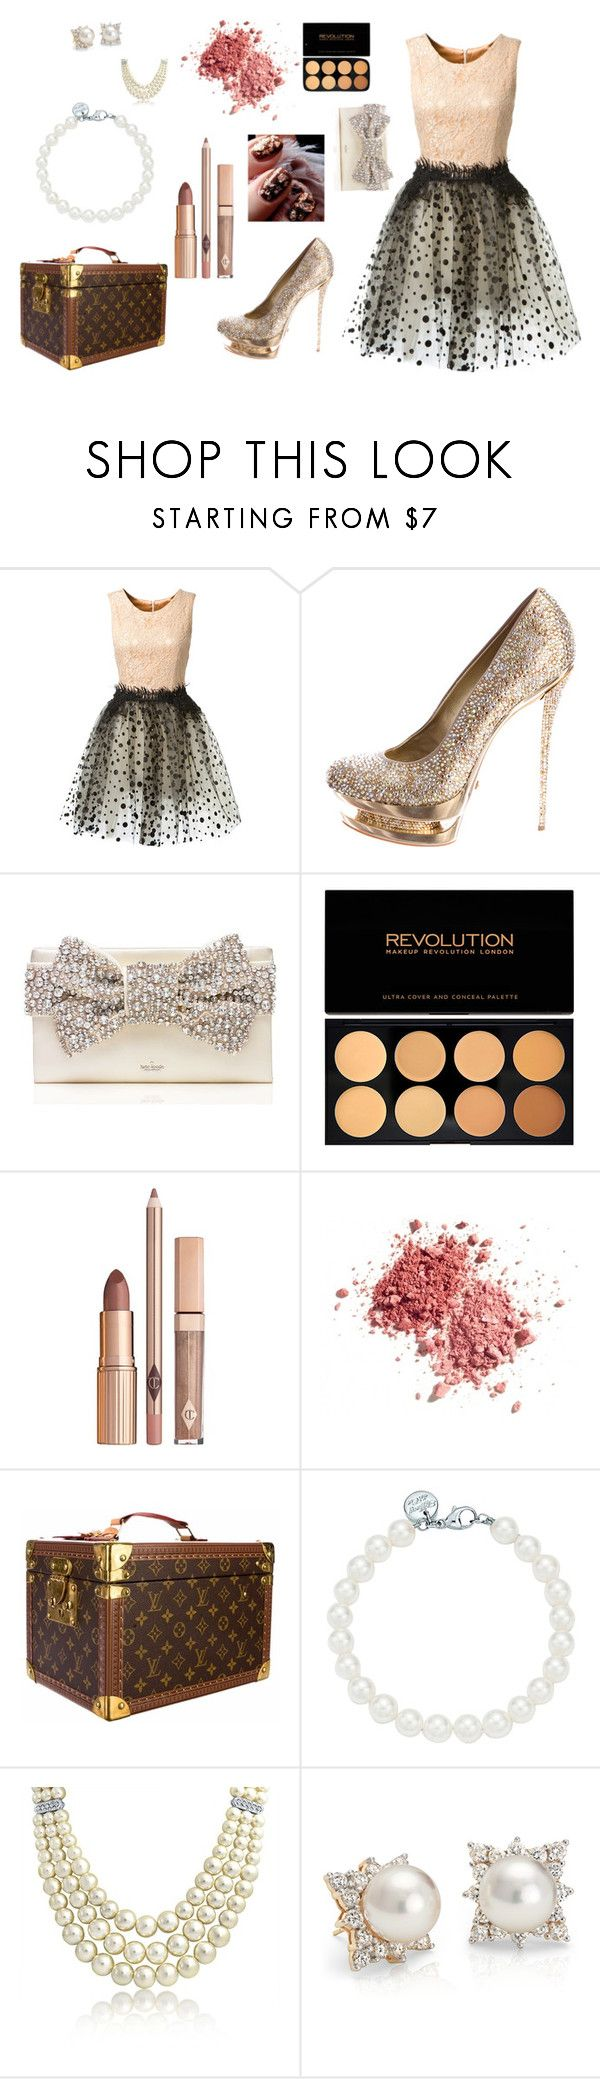 """""""Sem título #161"""" by natalia-farias ❤ liked on Polyvore featuring Loyd/Ford, Gianmarco Lorenzi, Kate Spade, Louis Vuitton, Tiffany & Co., Bling Jewelry and Blue Nile"""